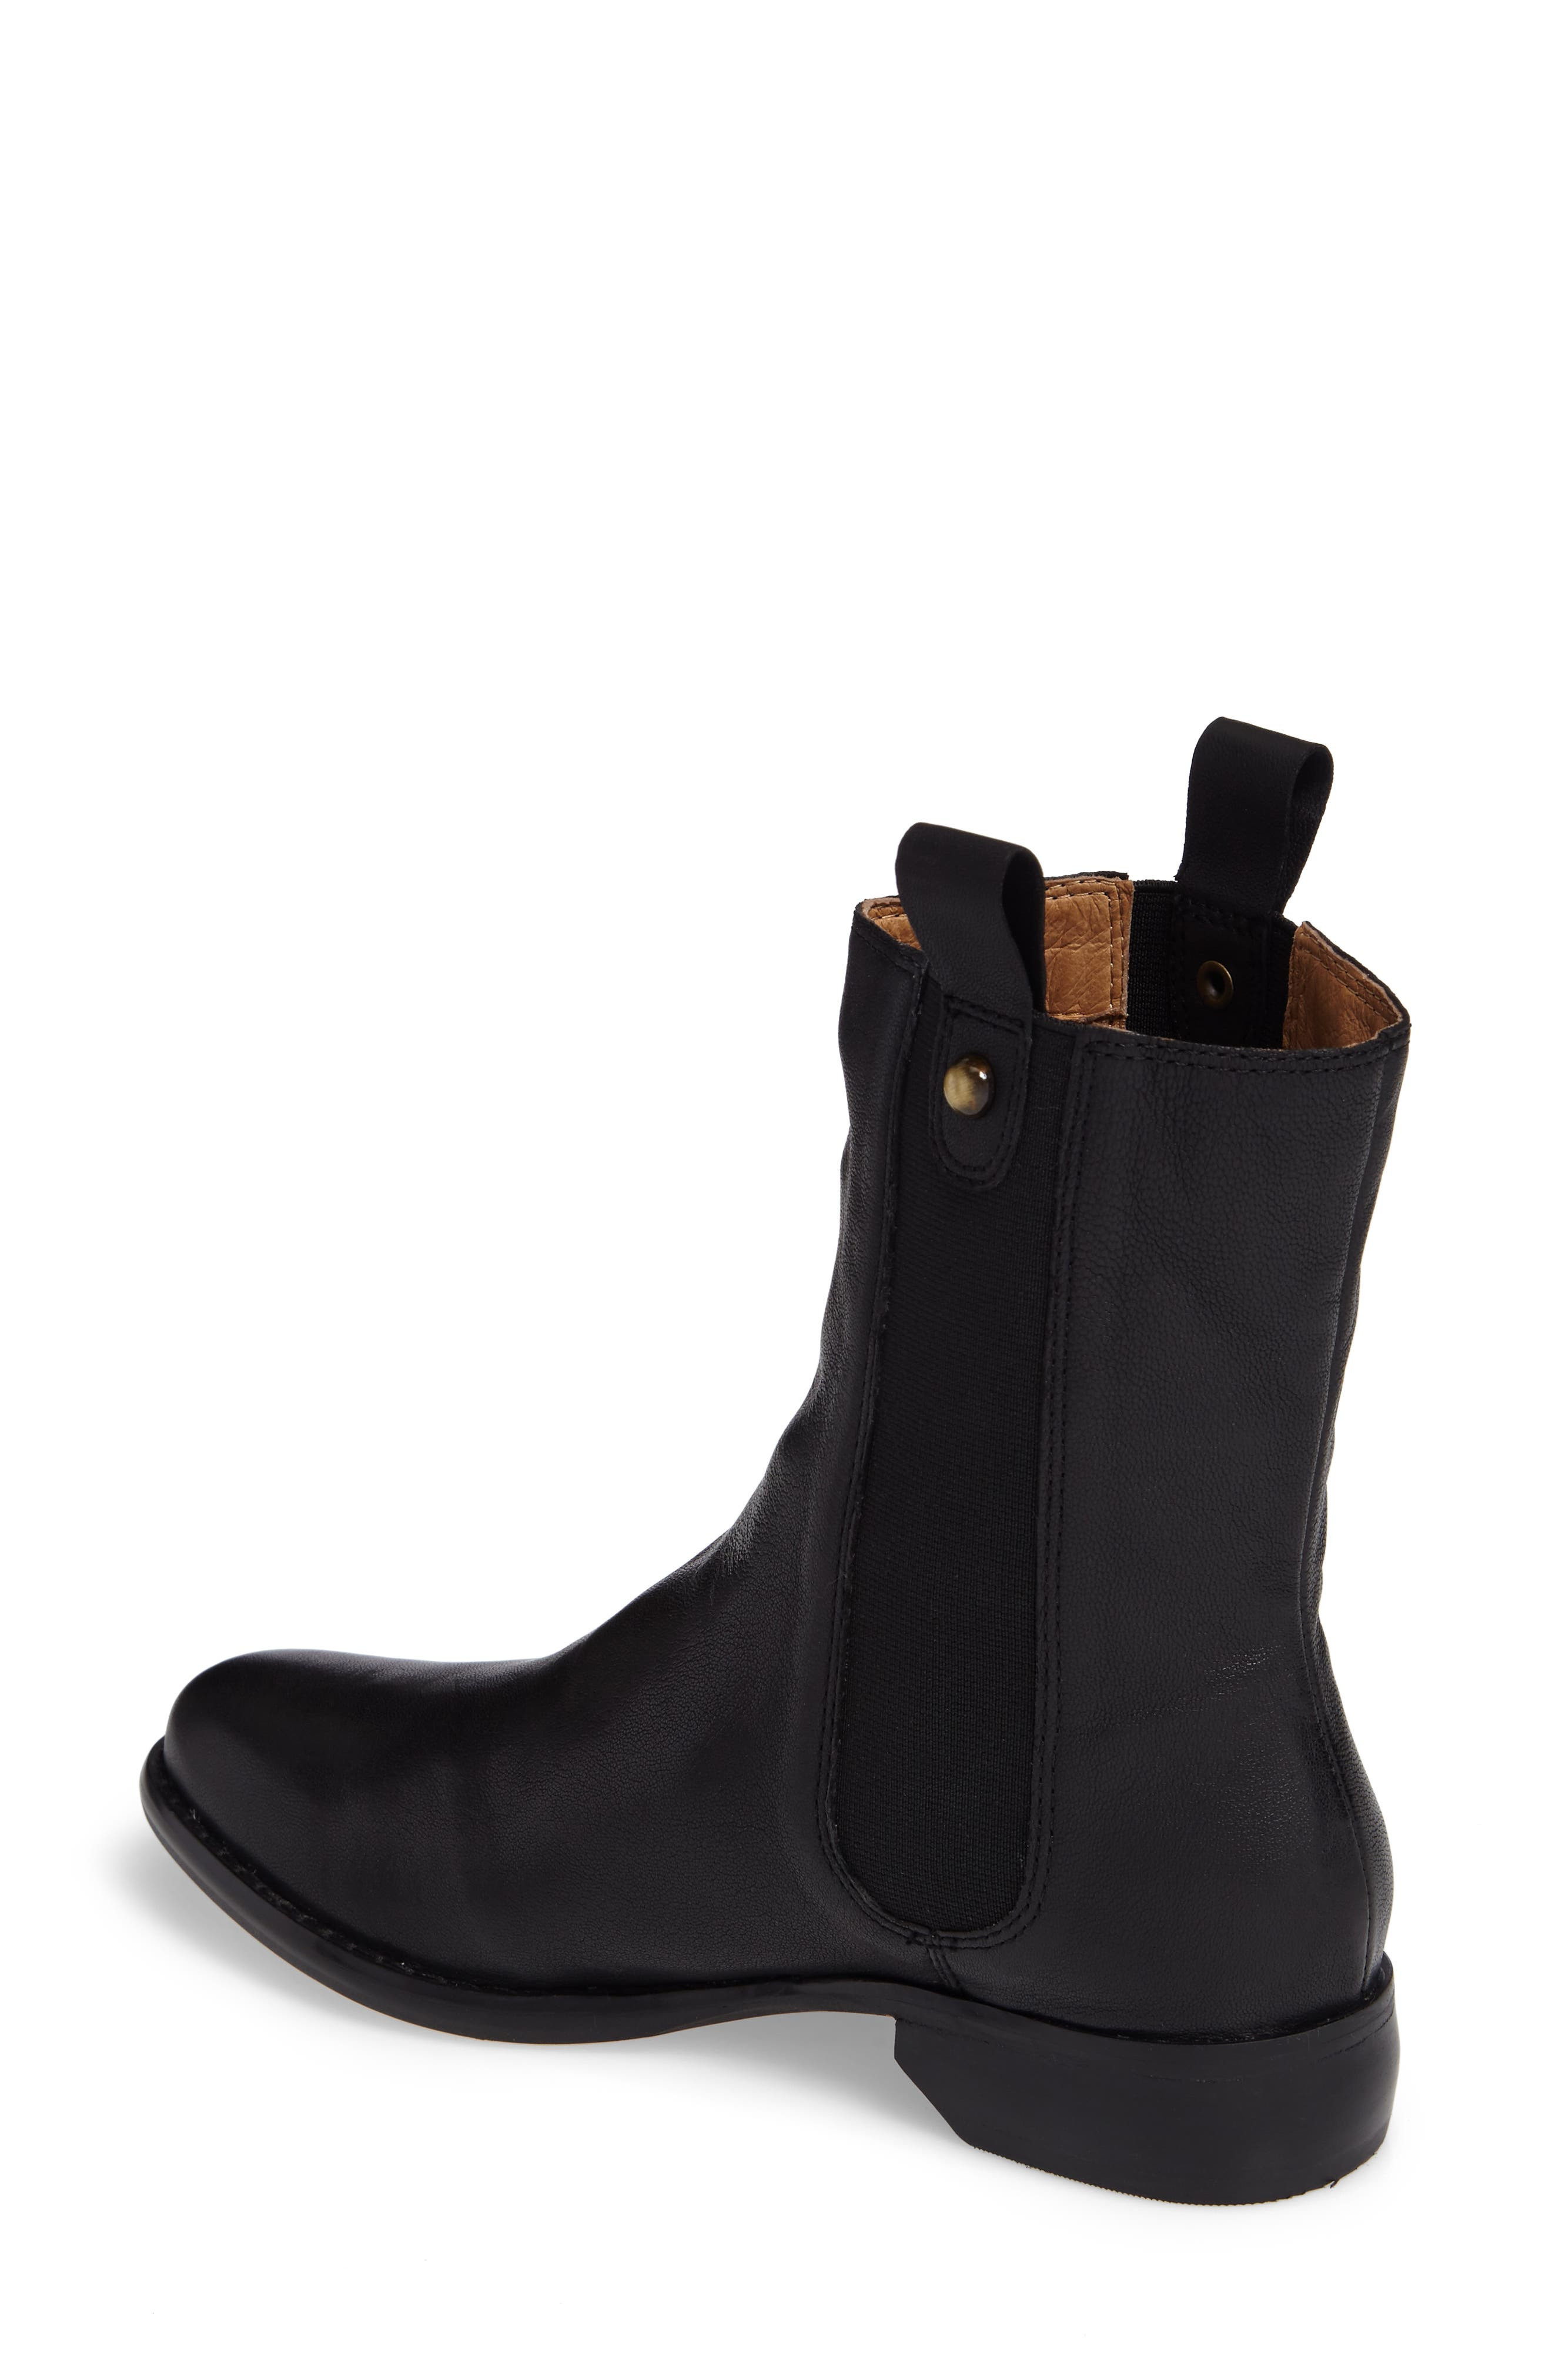 CC Corso Como Armando Boot,                             Alternate thumbnail 2, color,                             001